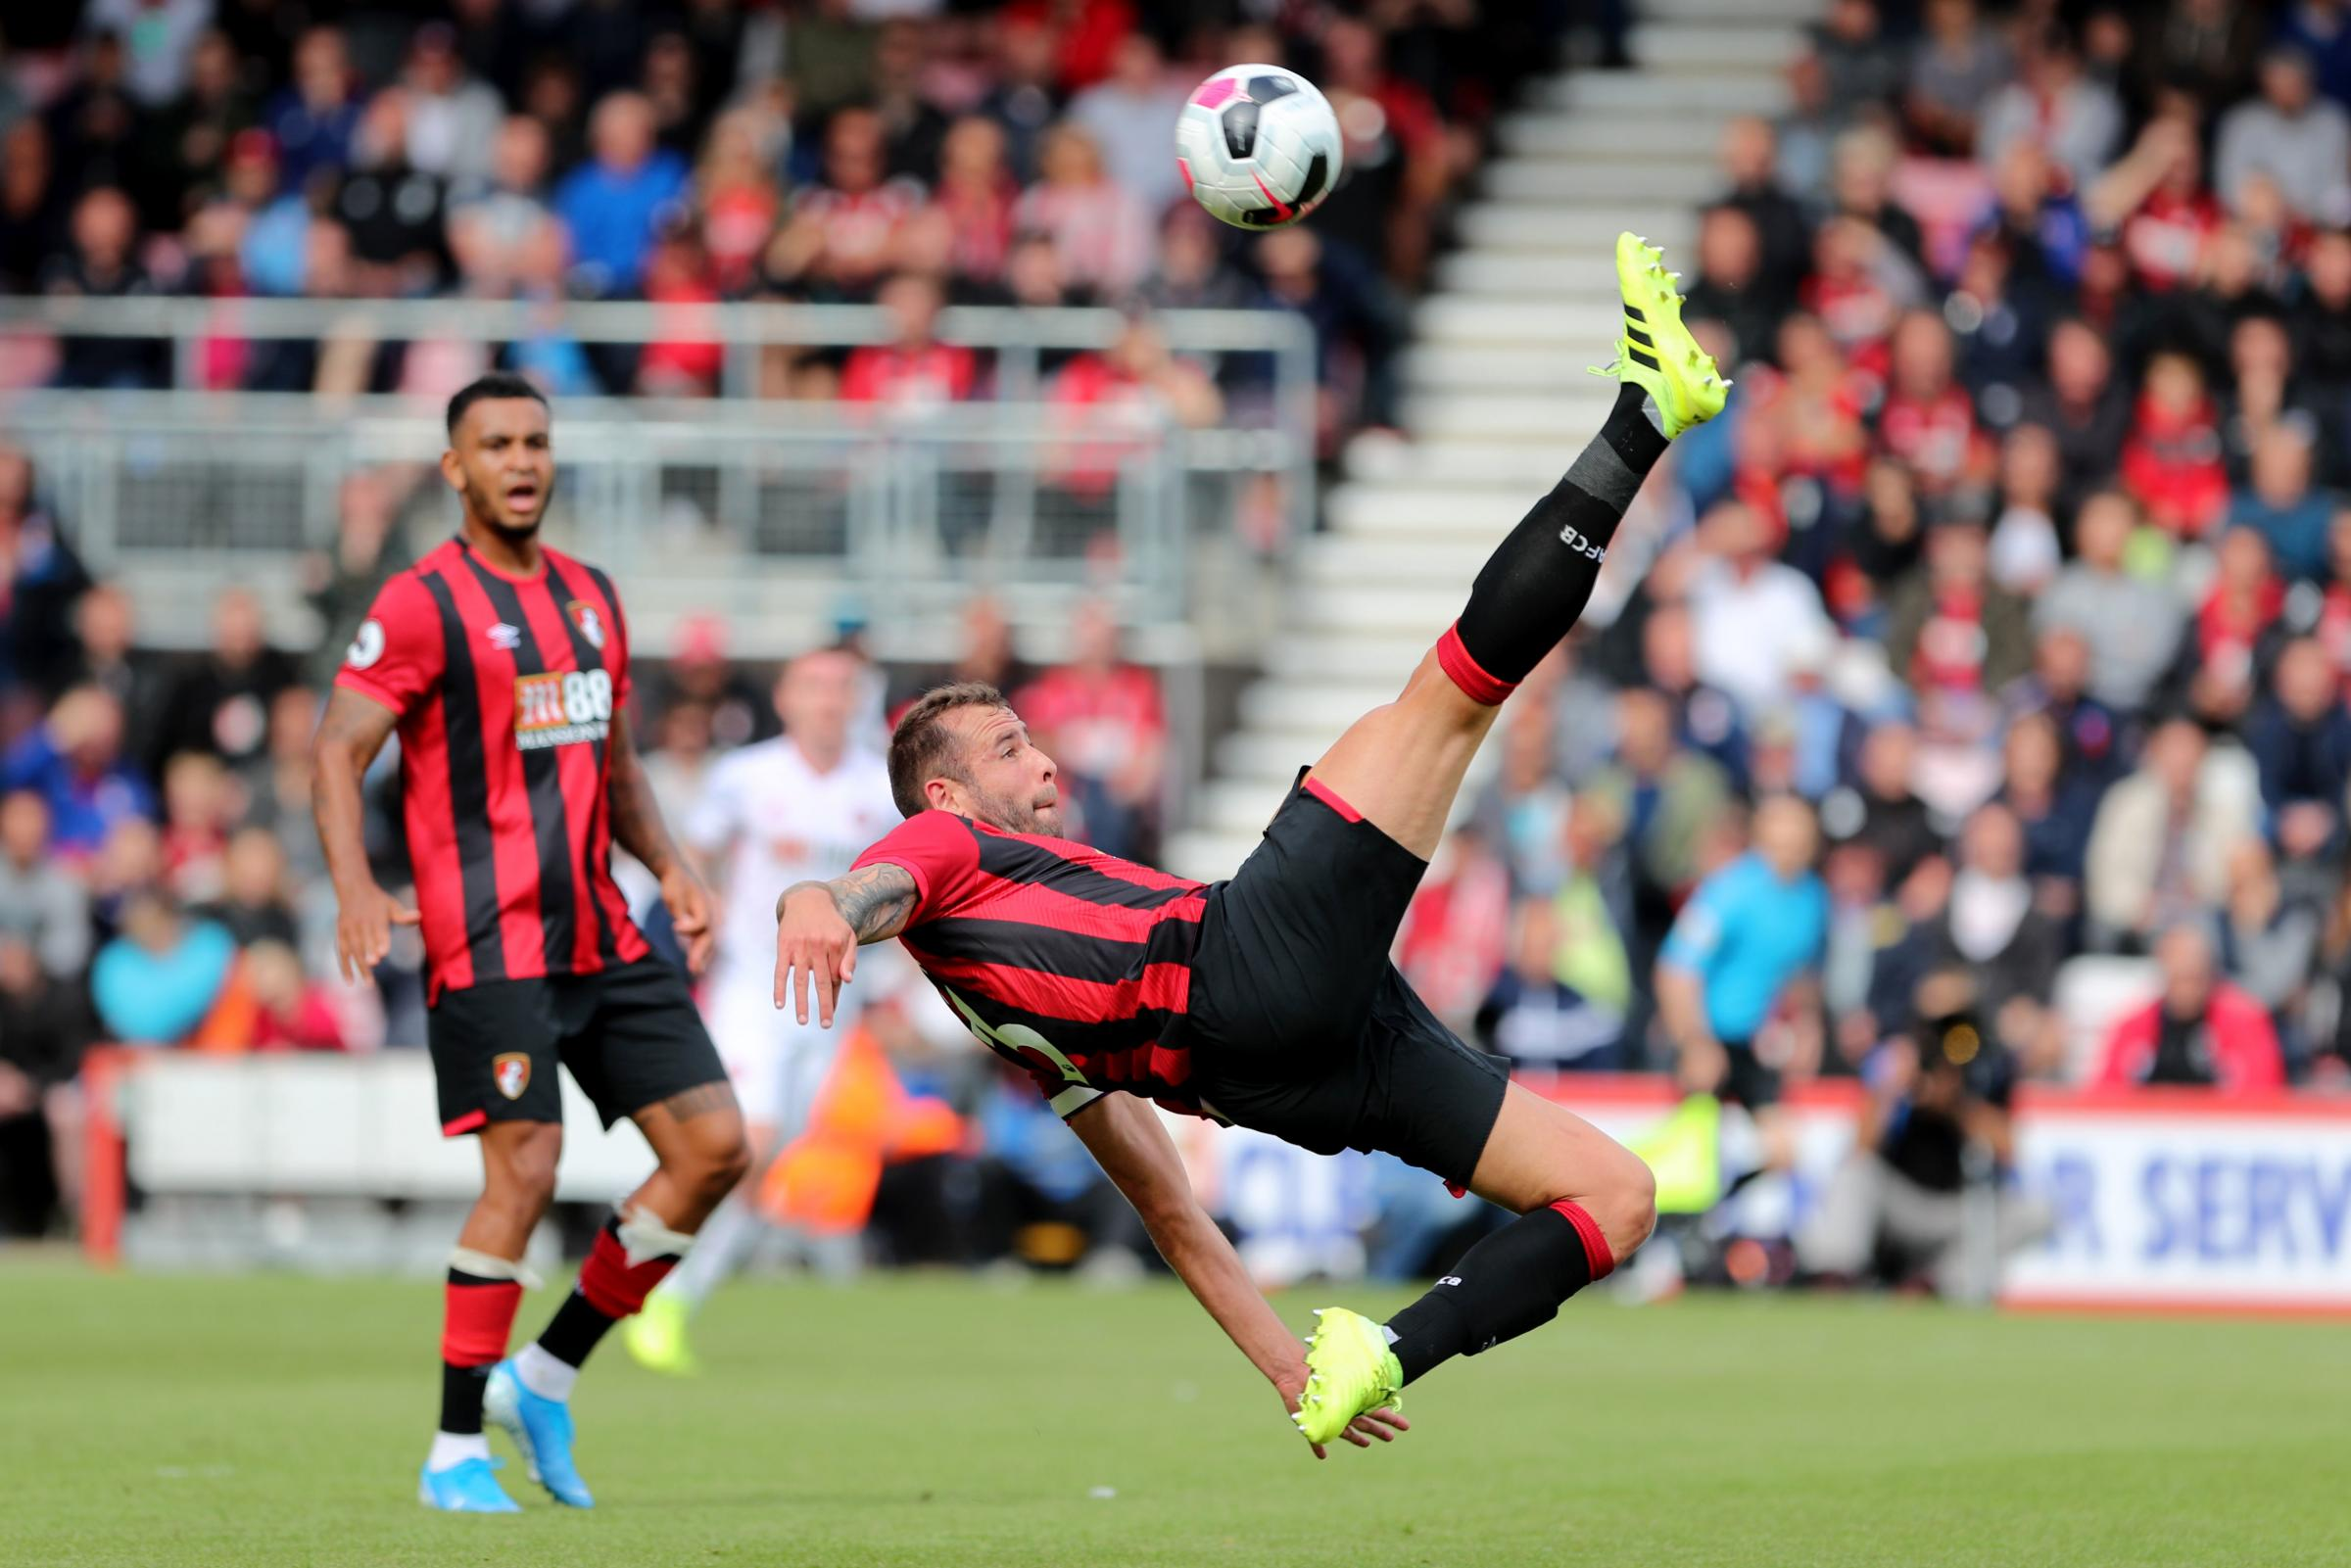 Clean sheets and full fitness leave AFC Bournemouth star Steve Cook feeling 'on top of the world'